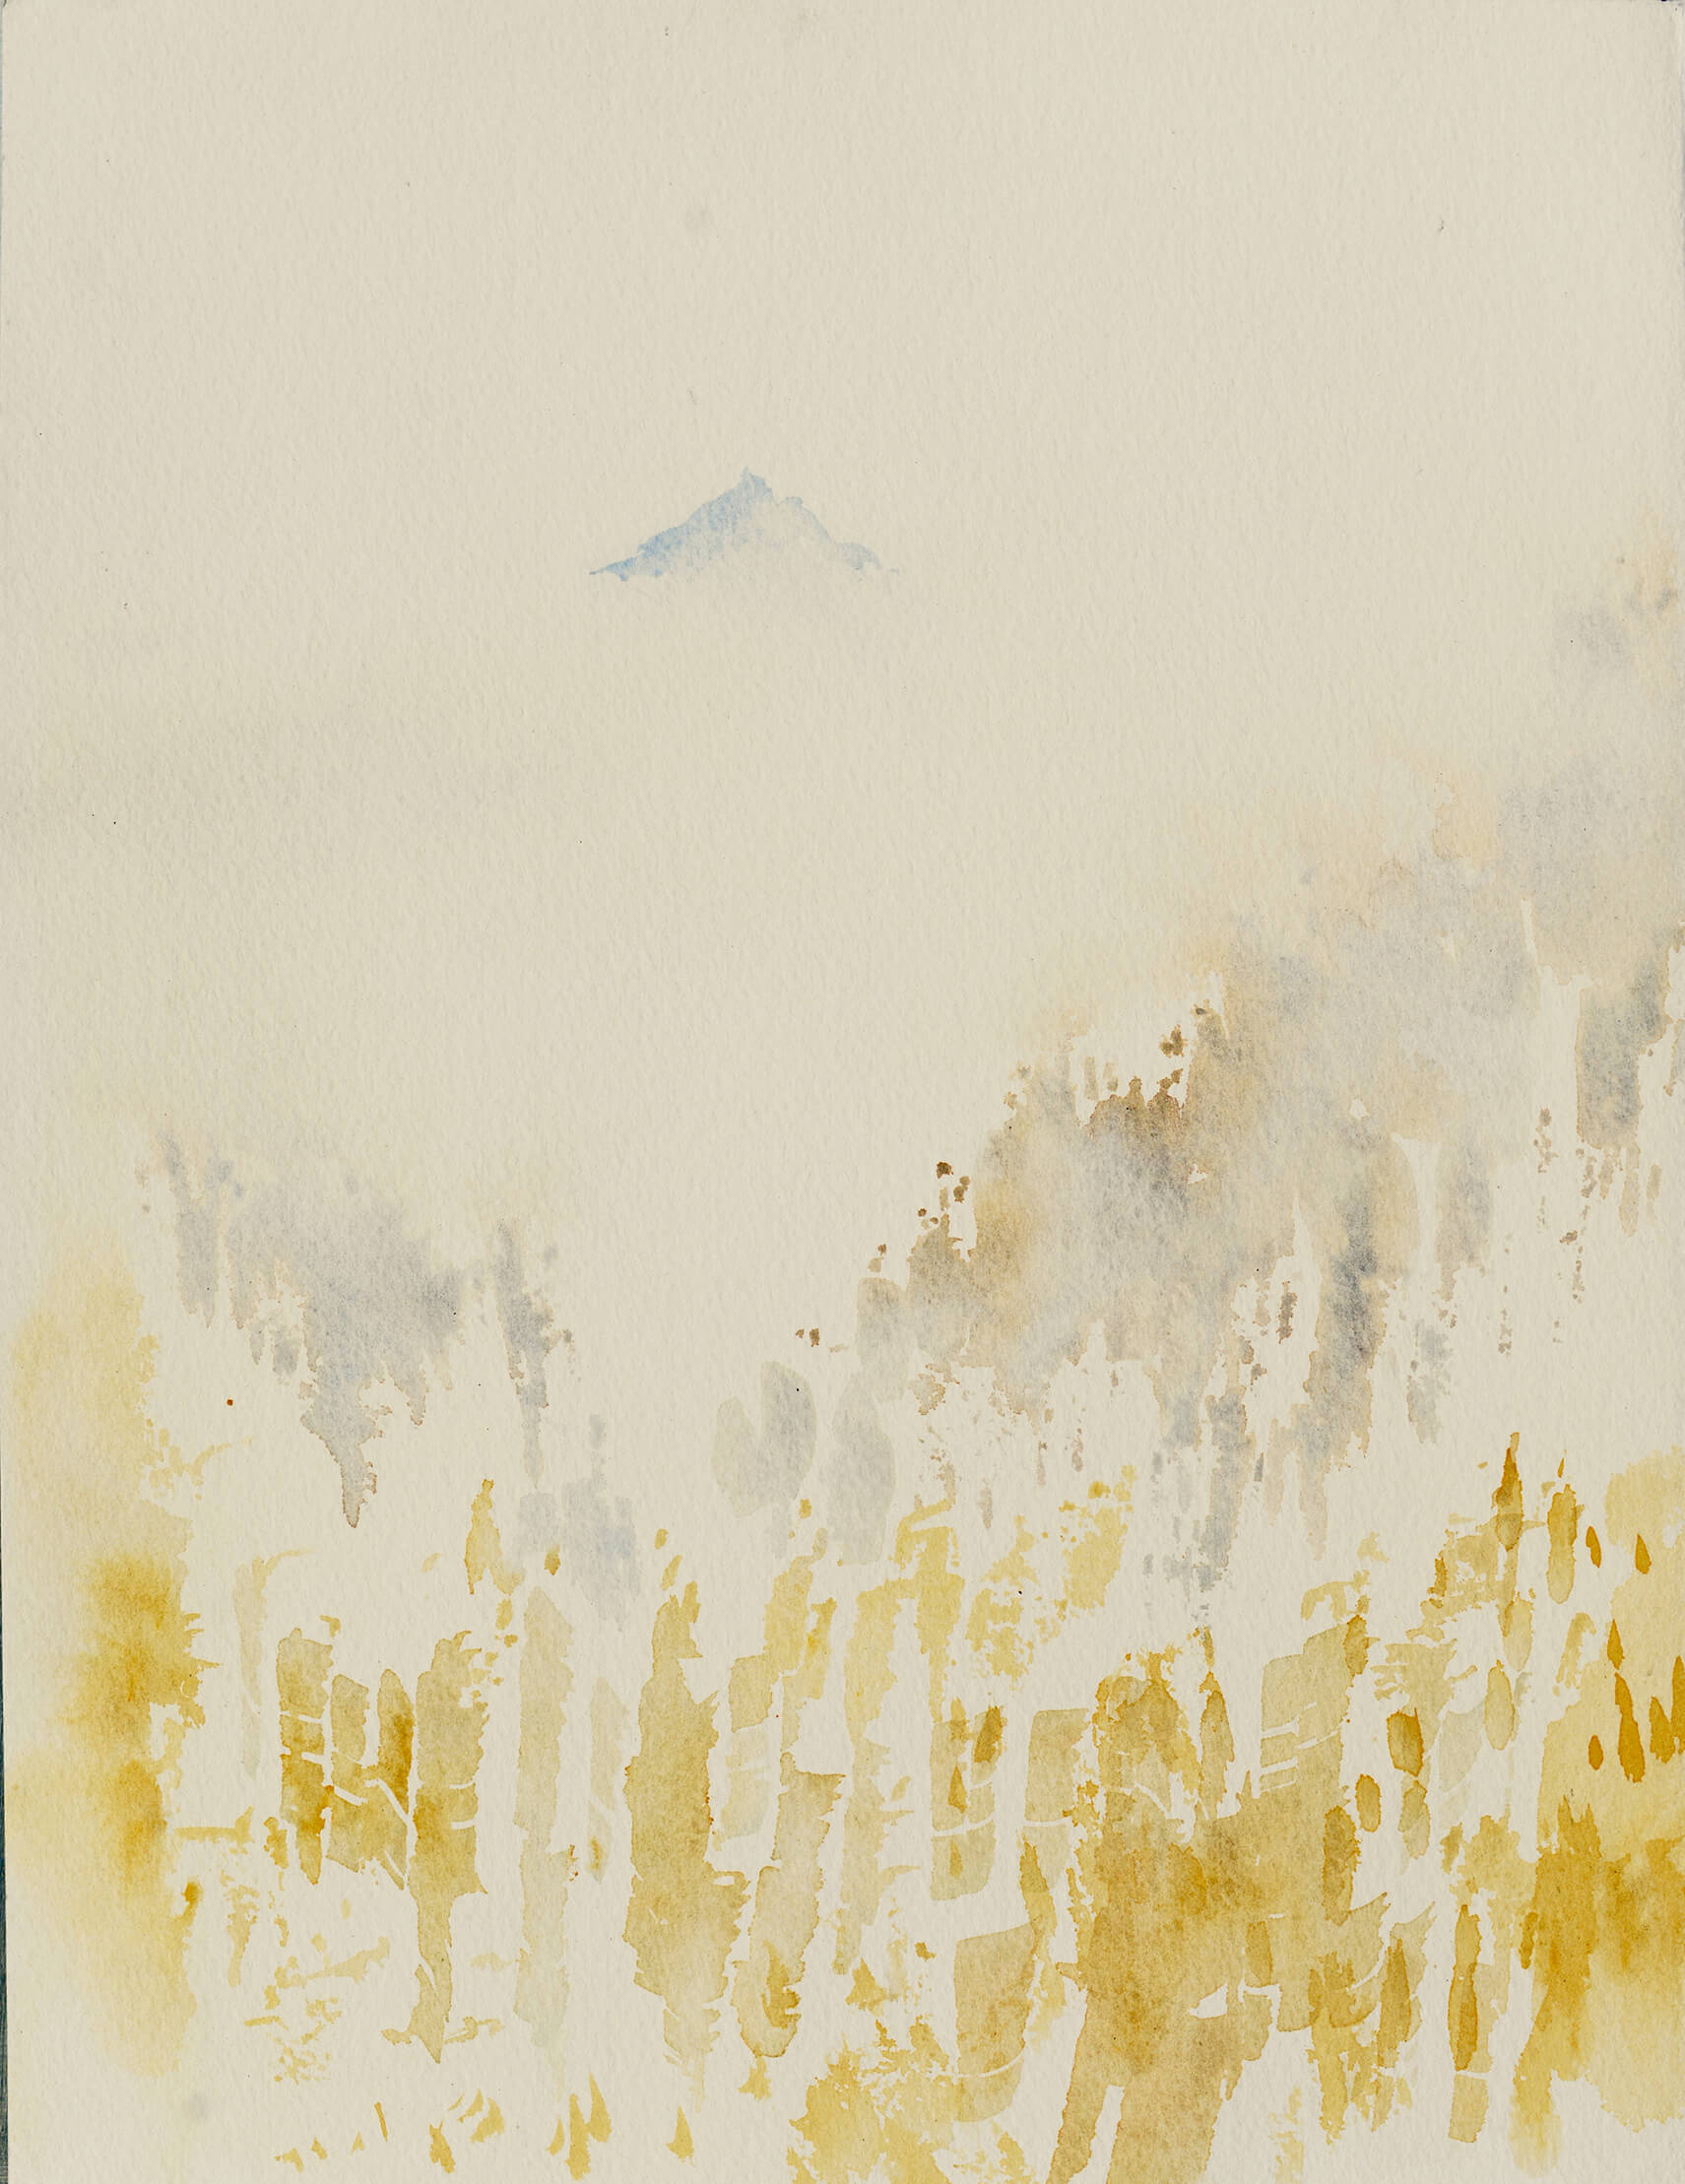 RHSK094 Ogura San Rising above Autumn Clouds ( Watercolour ) 36.8 x 28 cm